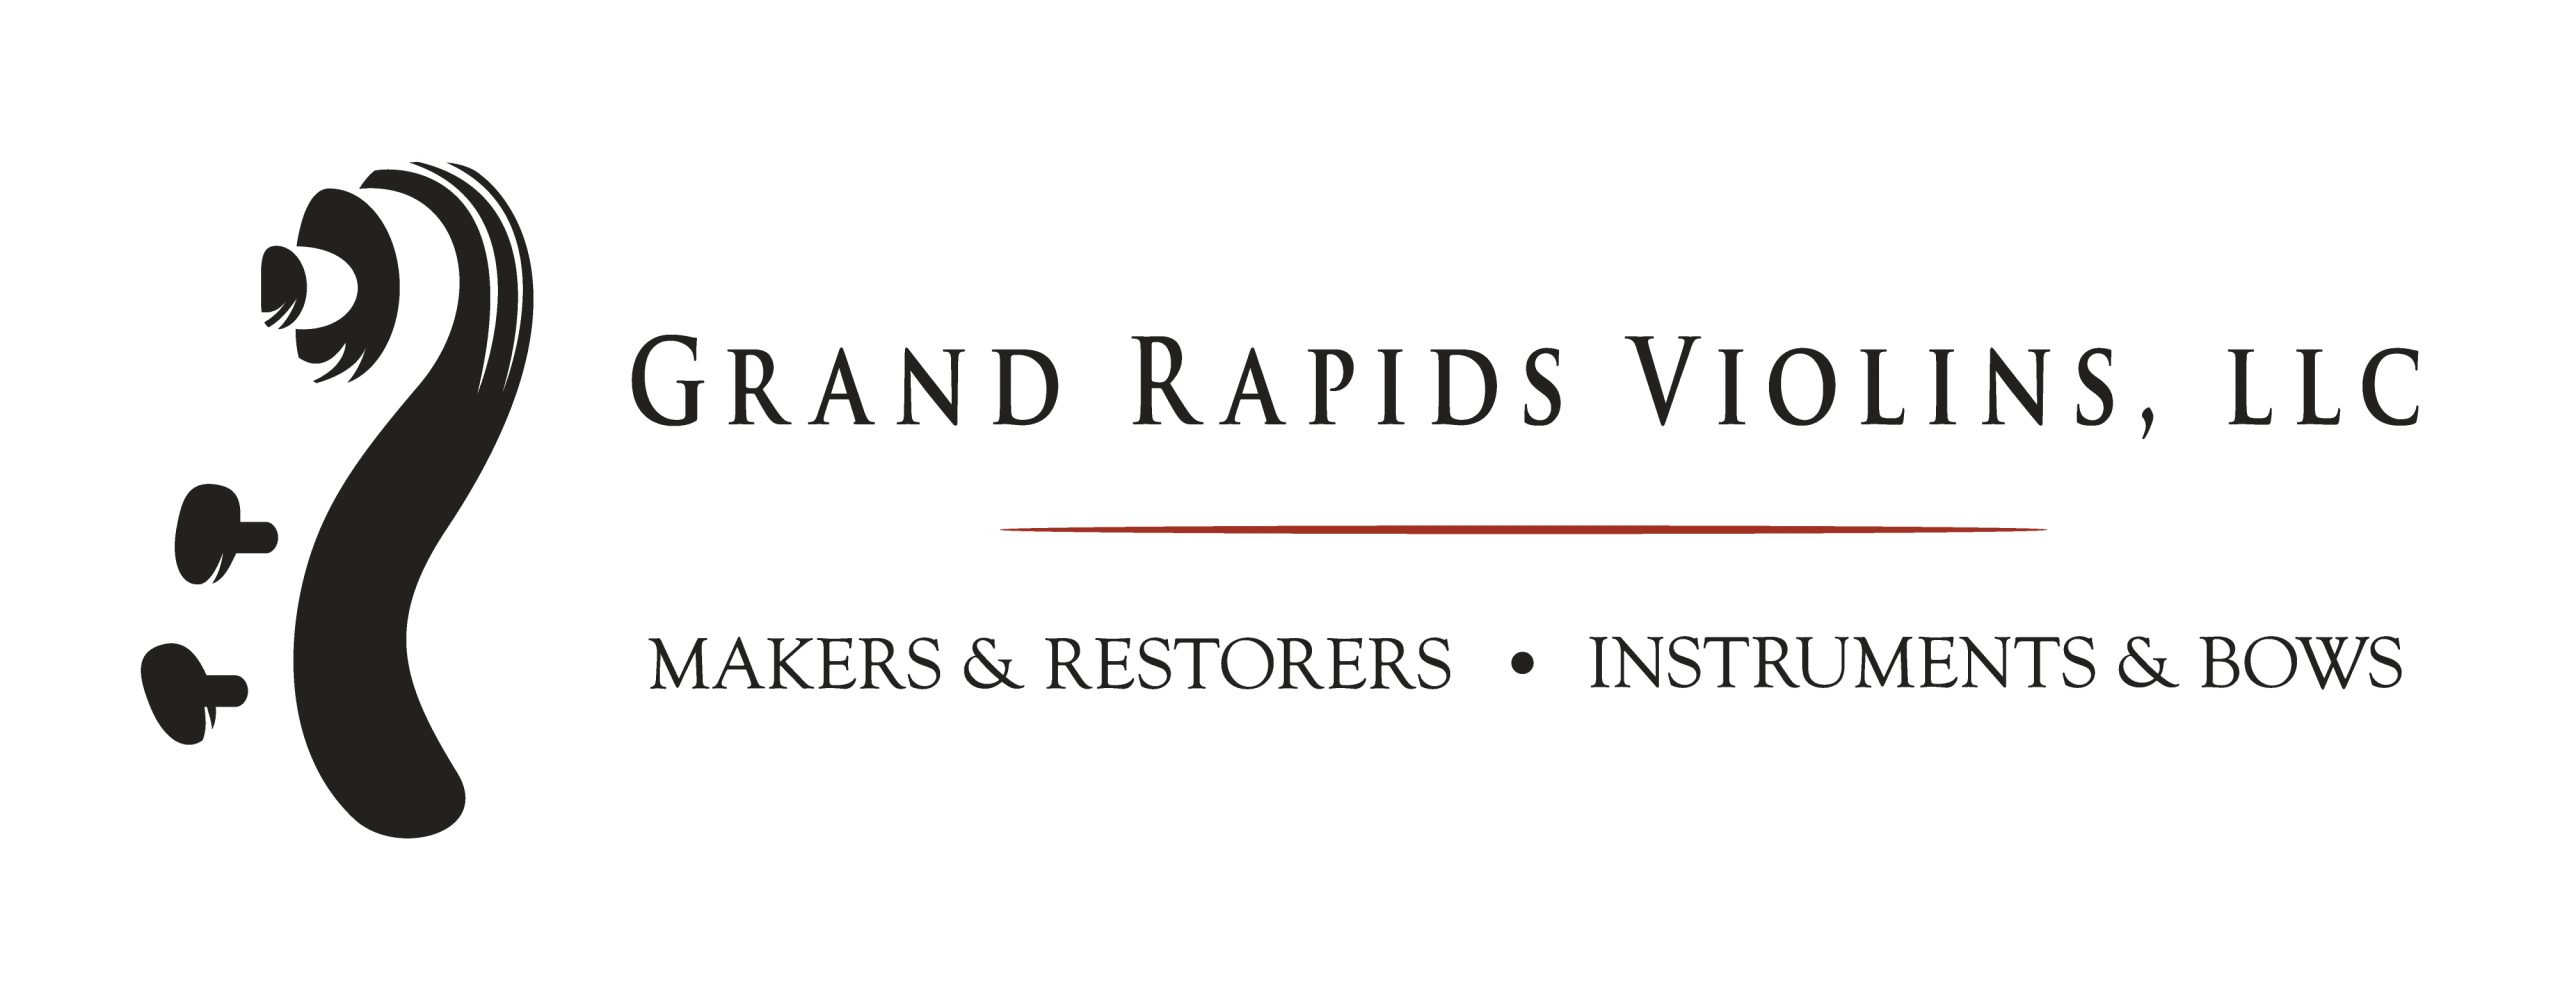 Grand Rapids Violins, LLC